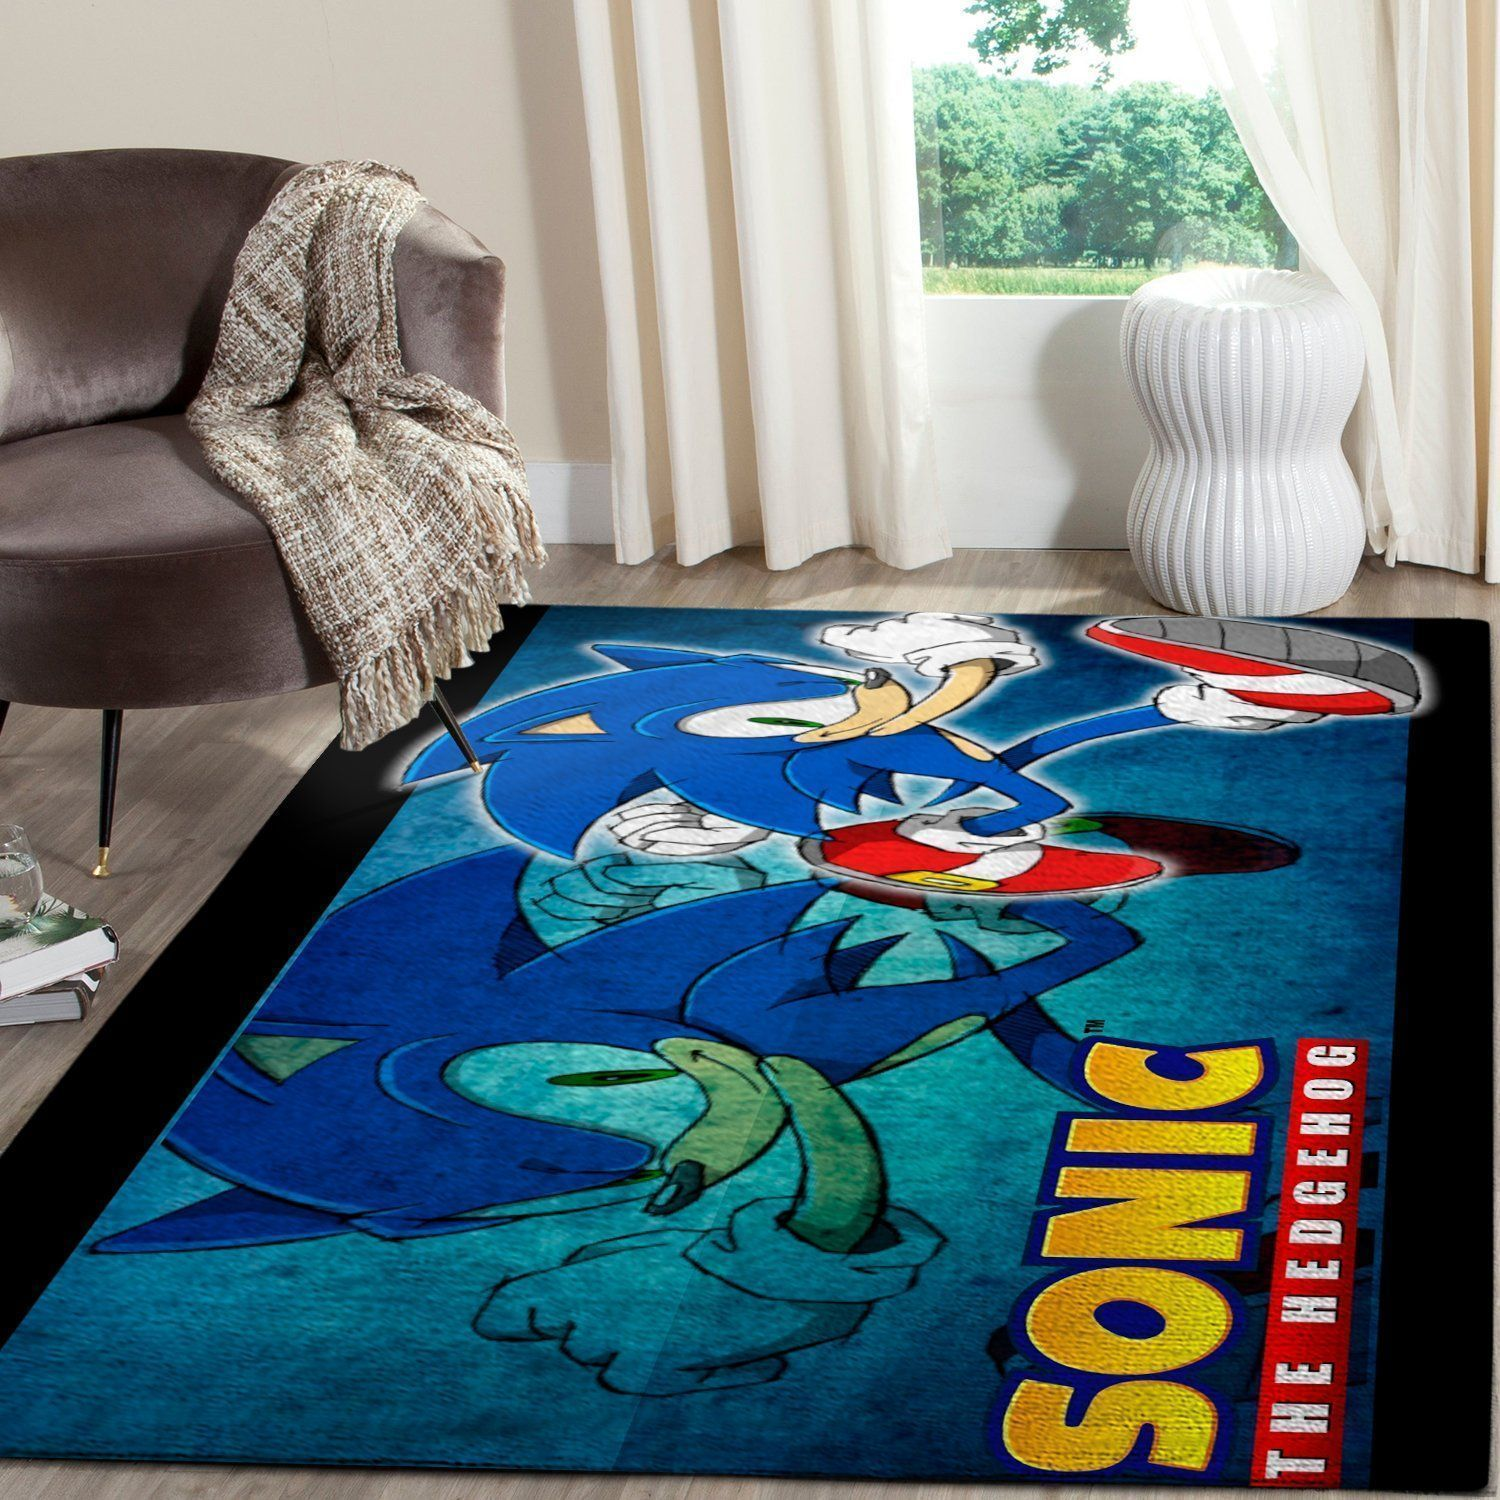 Sonic the Hedgehog Area Rug / Gaming Carpet, Gamer Living Room Rugs, Floor Decor 101113